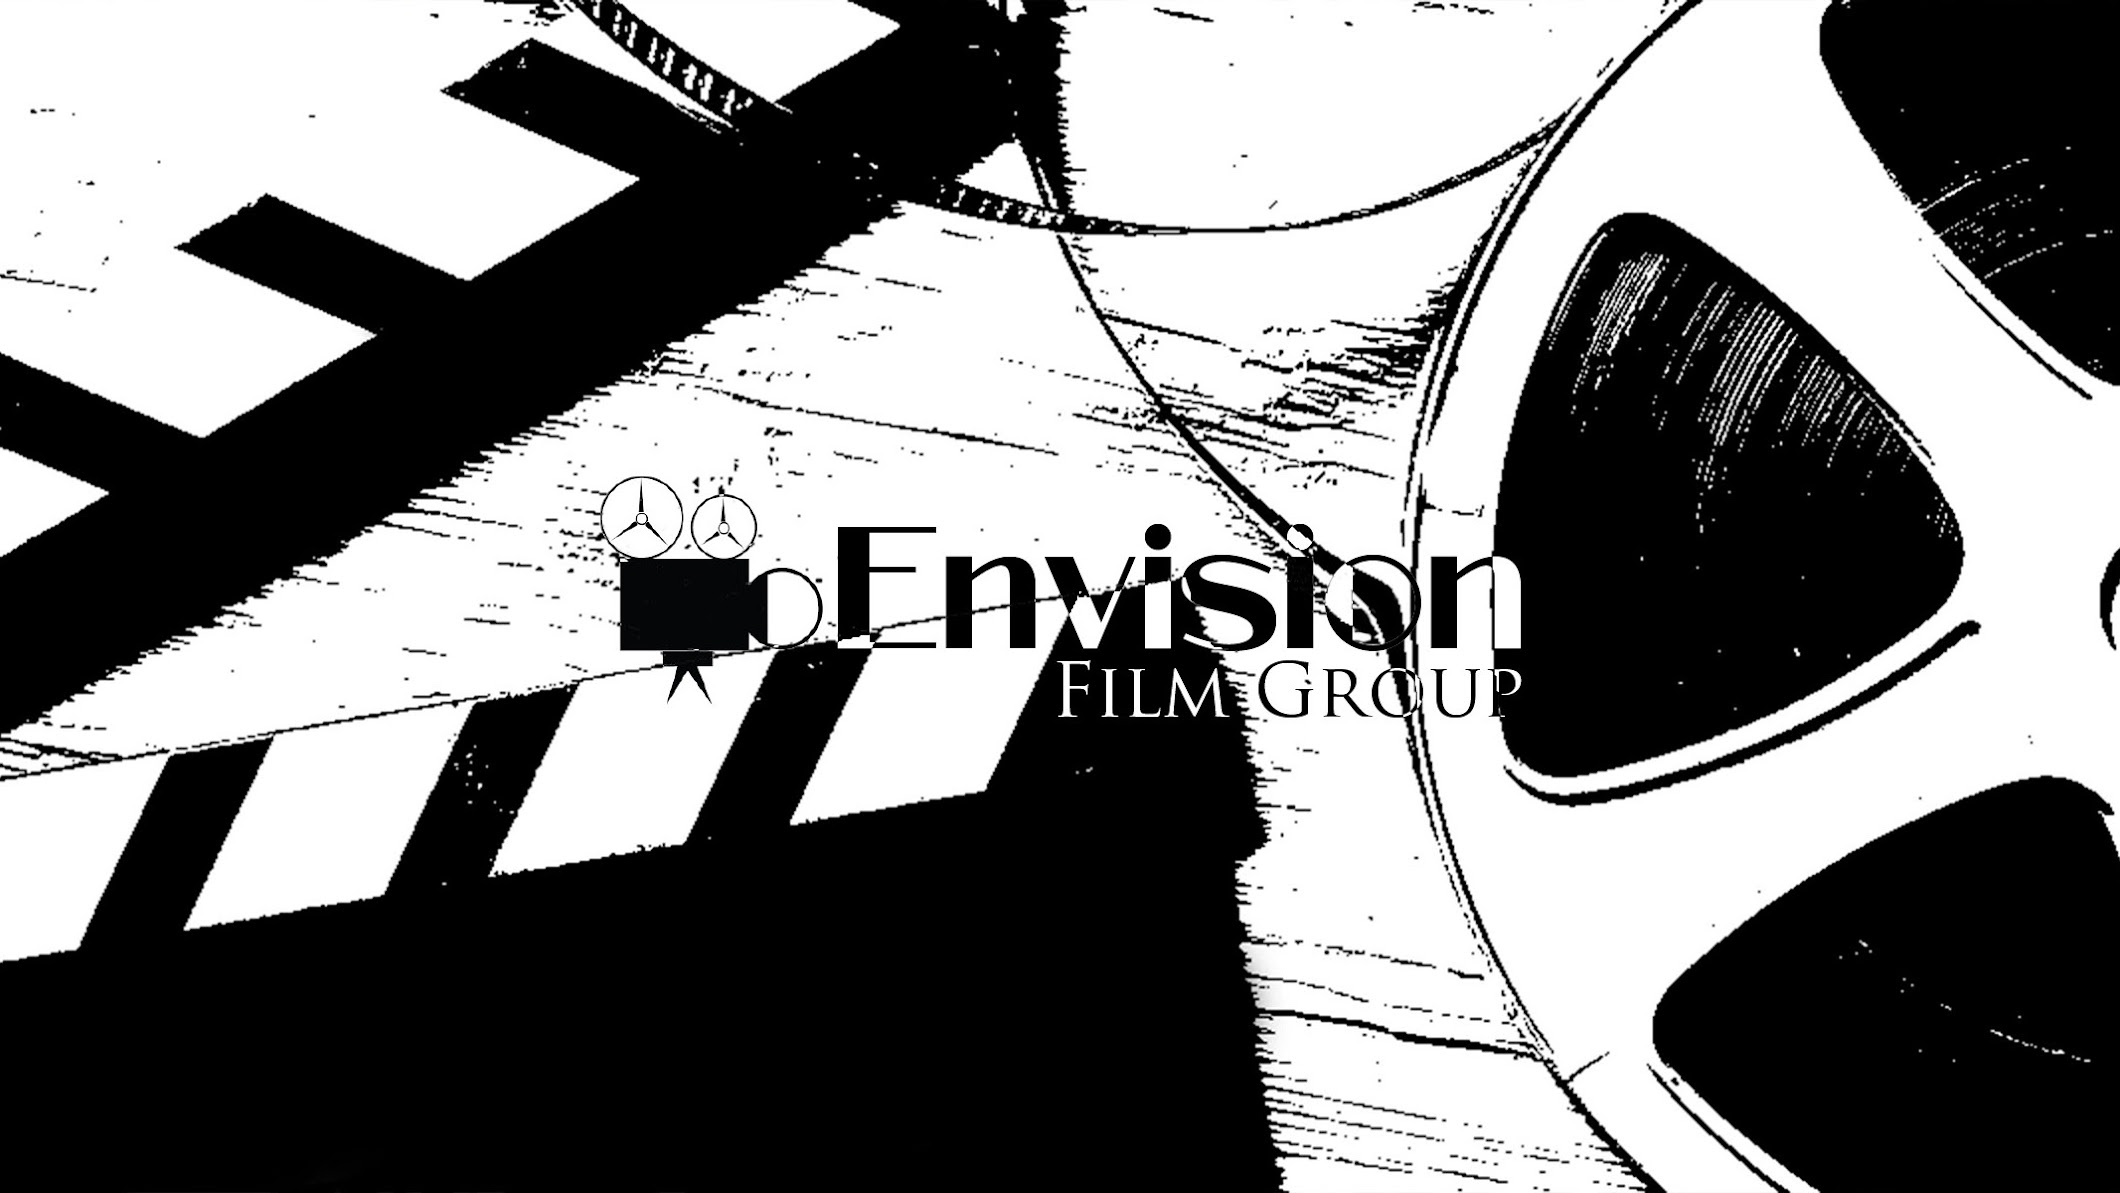 Envision Film Group